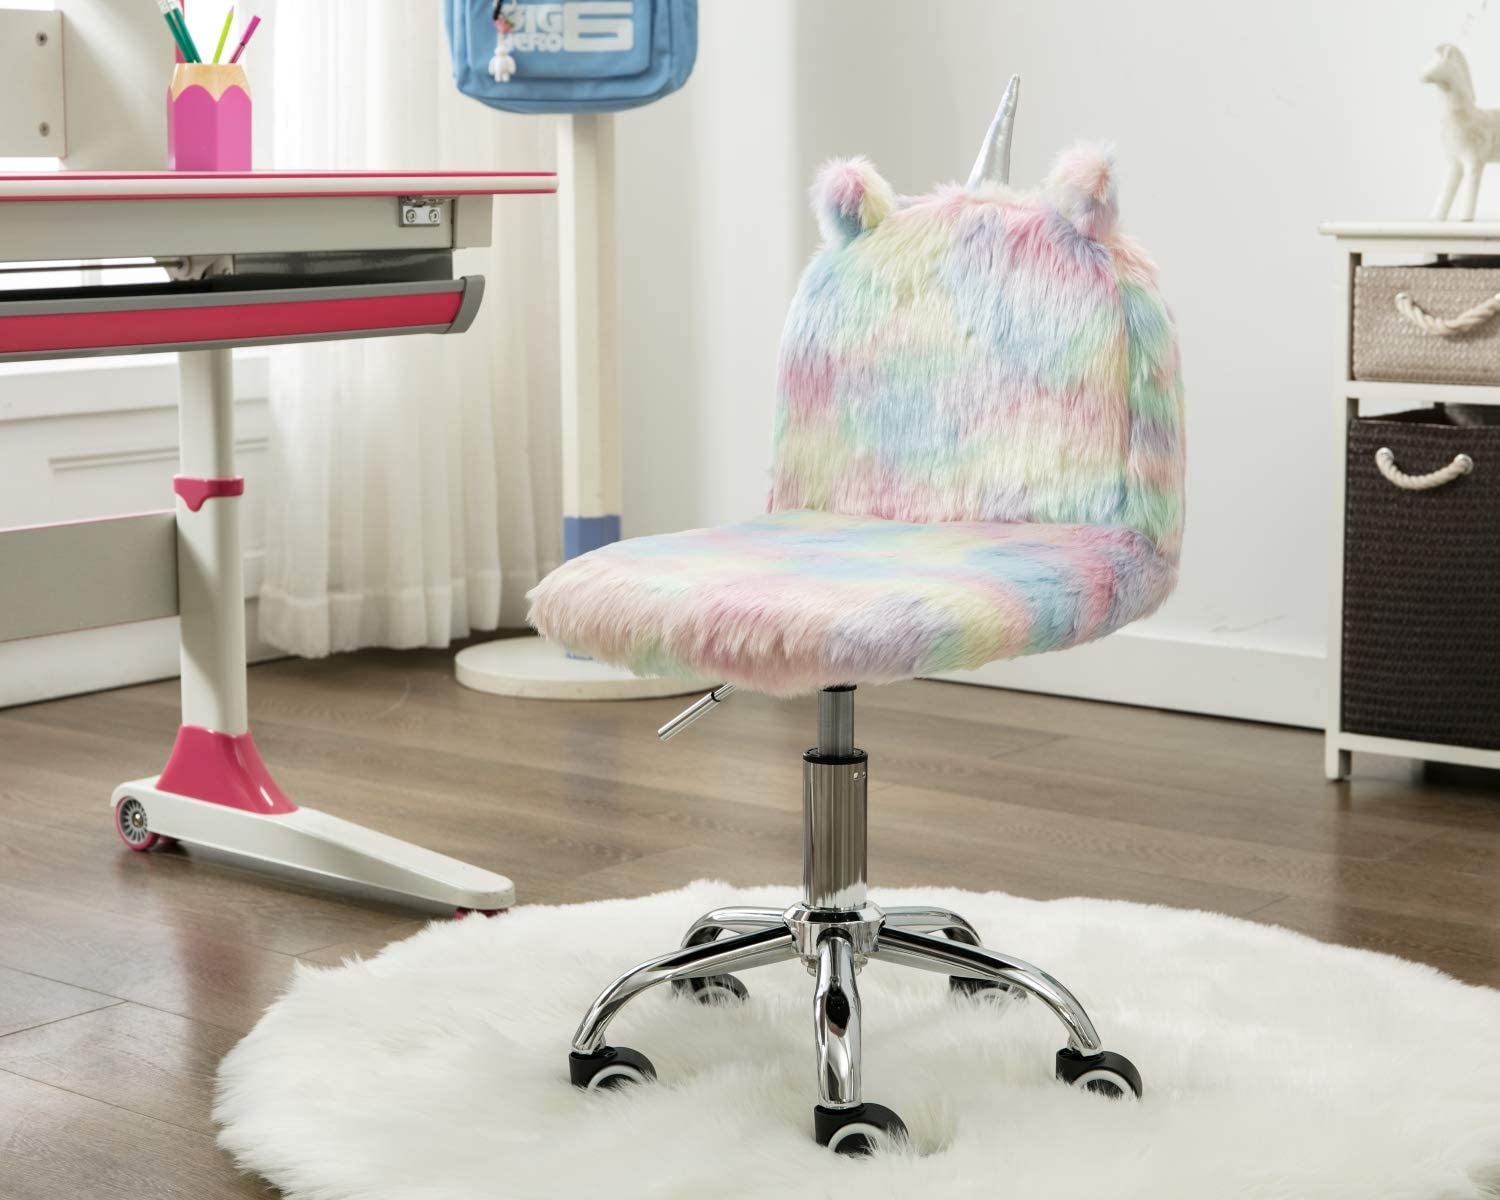 CIMOTA Cute Furry Children Desk Chair Colorful Small Rolling Chair for Kids Girls Boys, Adjustable Swivel Comfortable Child Computer Chair for Study Room